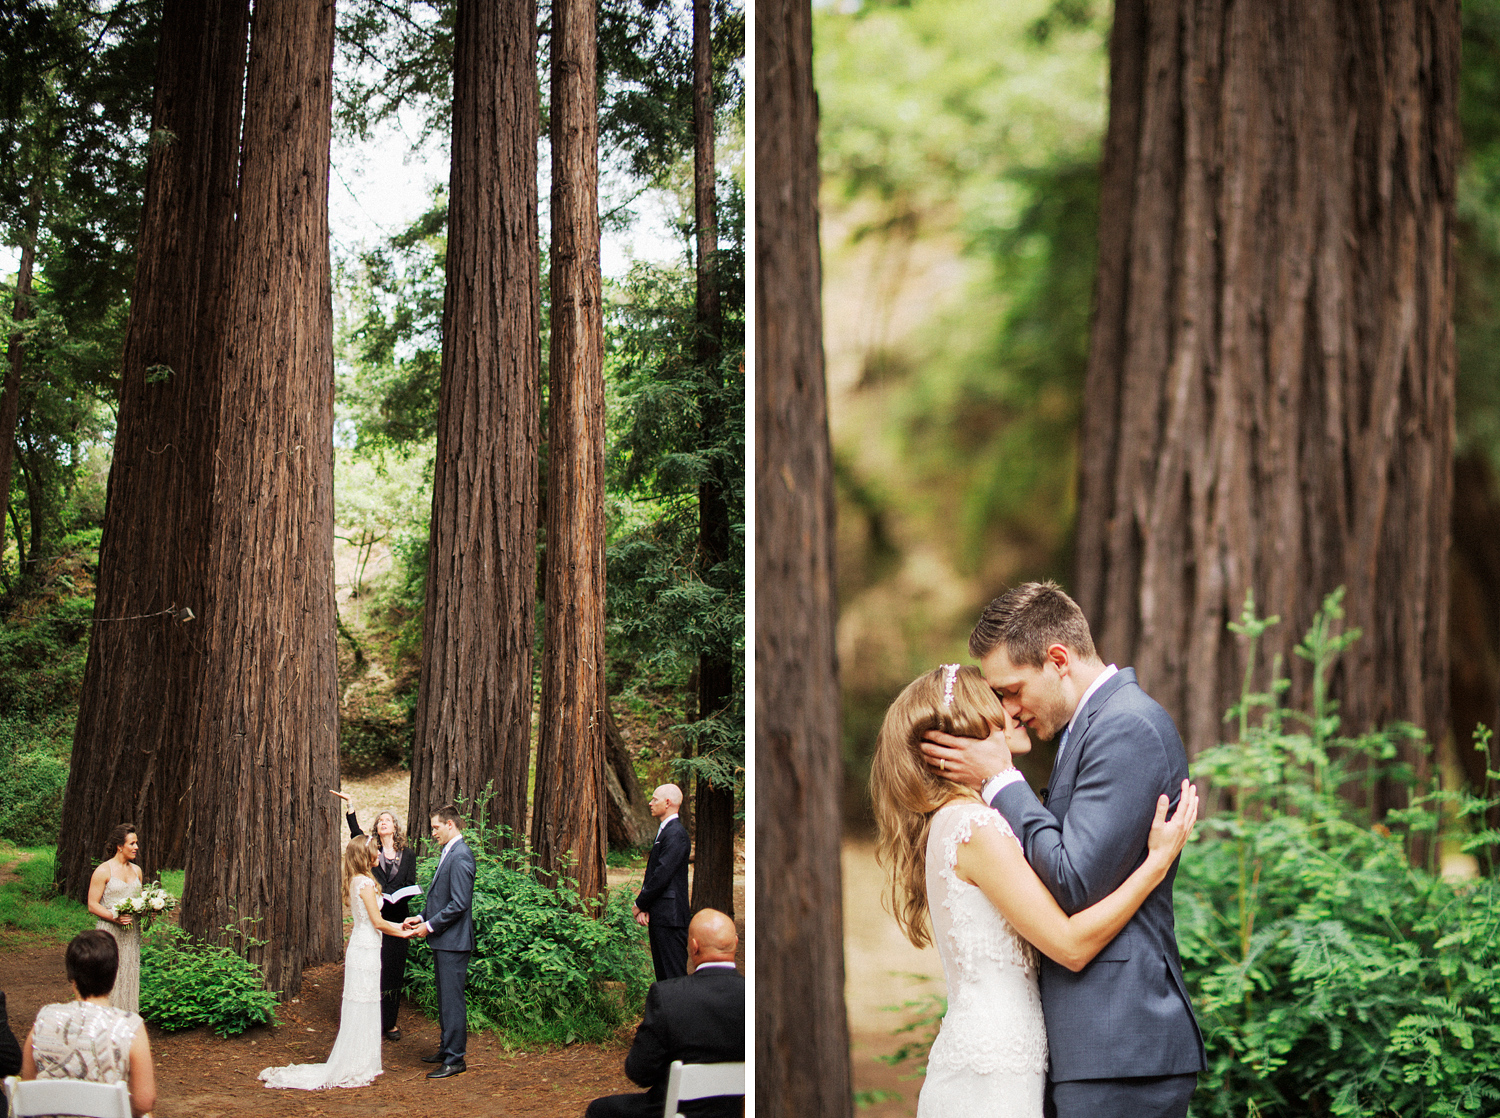 keblog-big-sur-wedding-ryan-flynn-photography-0024.JPG